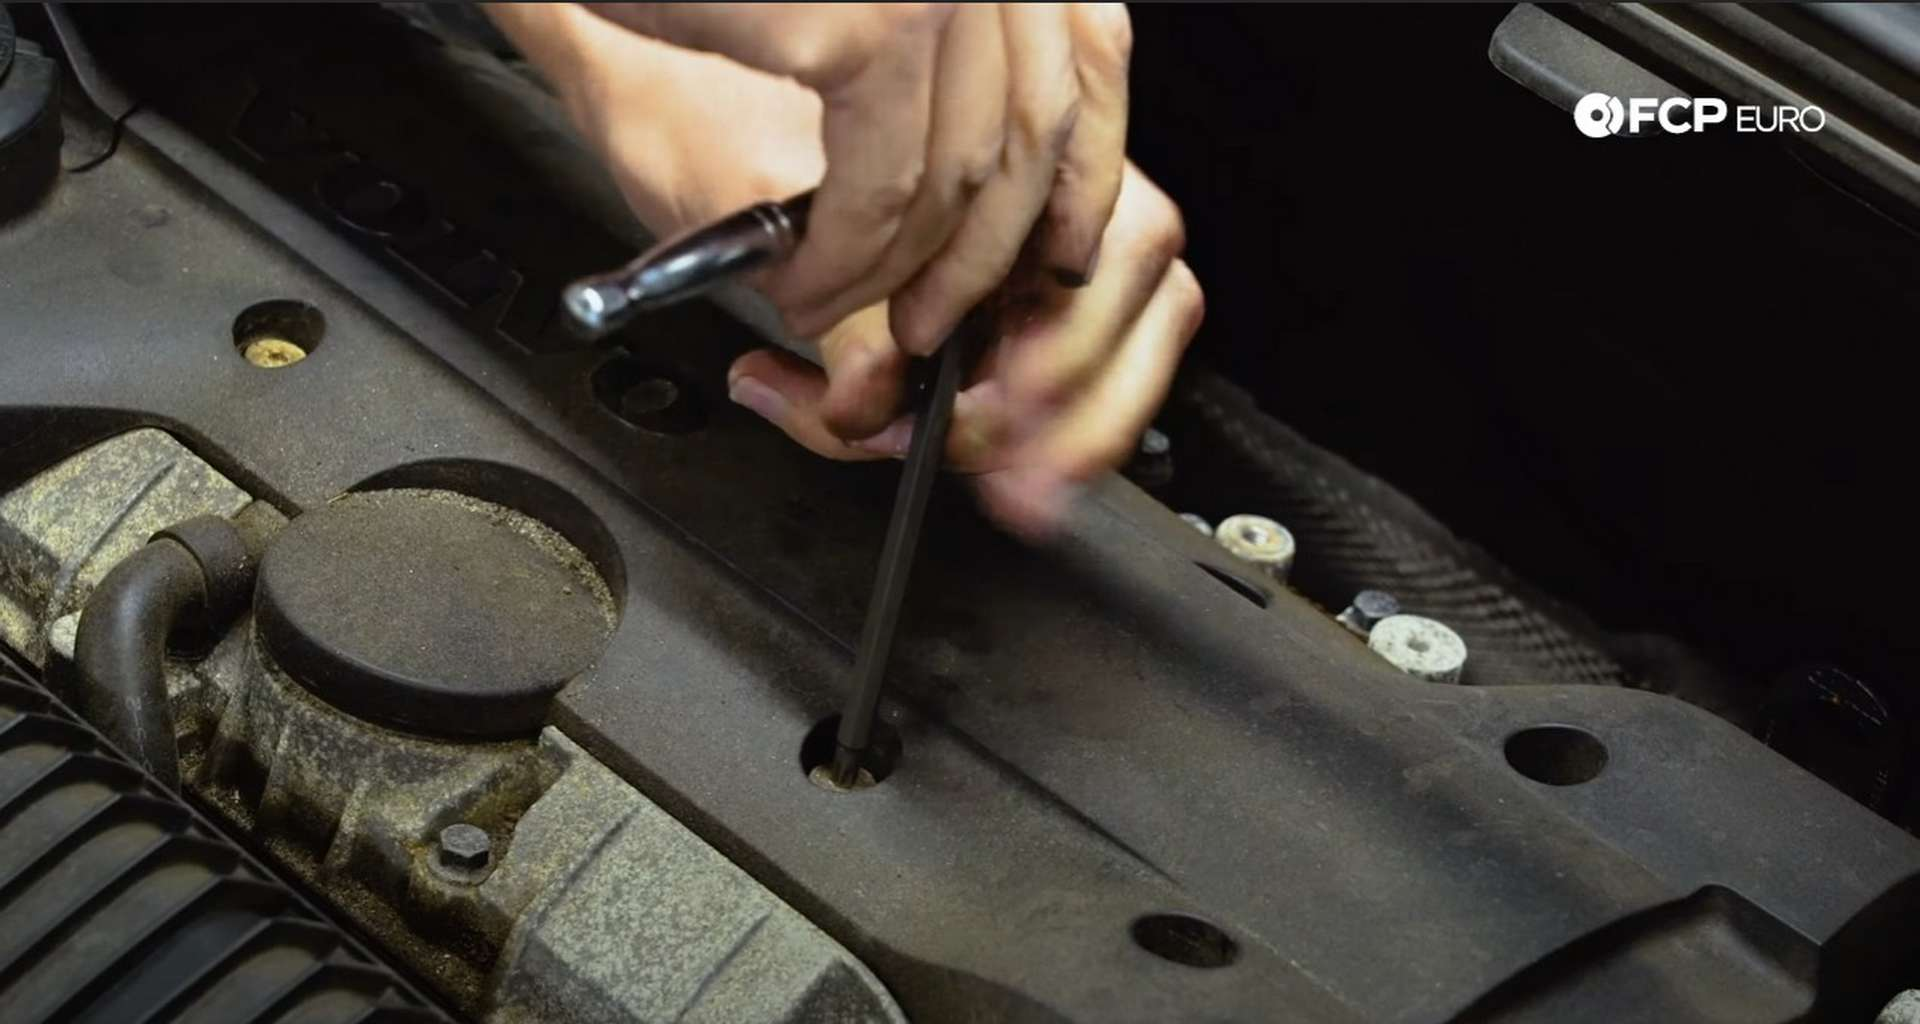 DIY Volvo Spark Plug and Ignition Coil Replacement removing the ignition coil cover